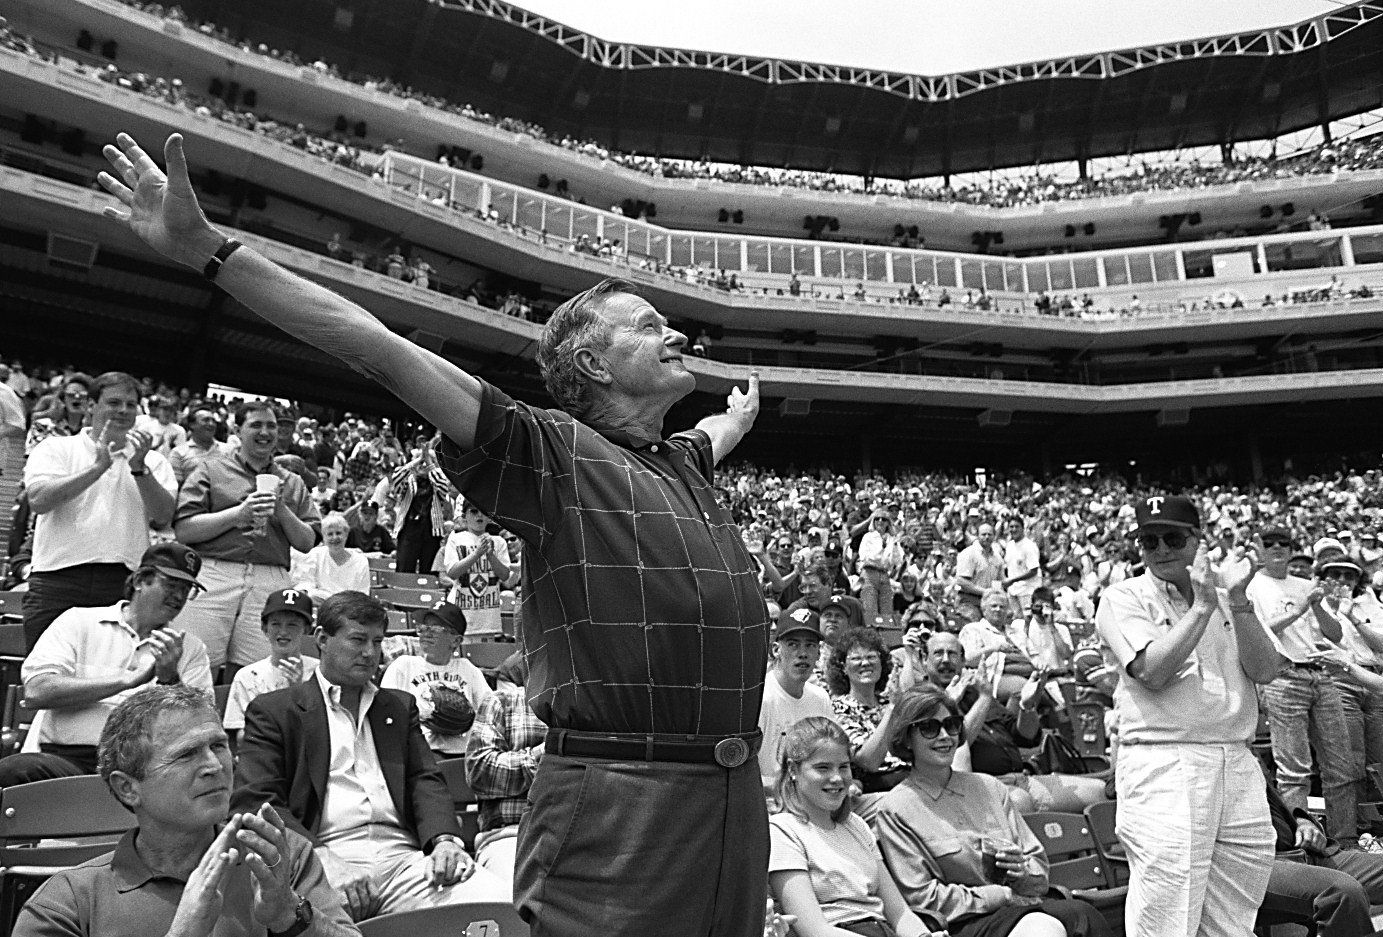 1994: Former Pres. George Bush acknowledges fans' cheers at The Ballpark in Arlington before the Texas Rangers played the Minnesota Twins. Son George W. Bush, Rangers' managing general partner, is seated at left, with wife Laura and daughter Jenna Bush at right.